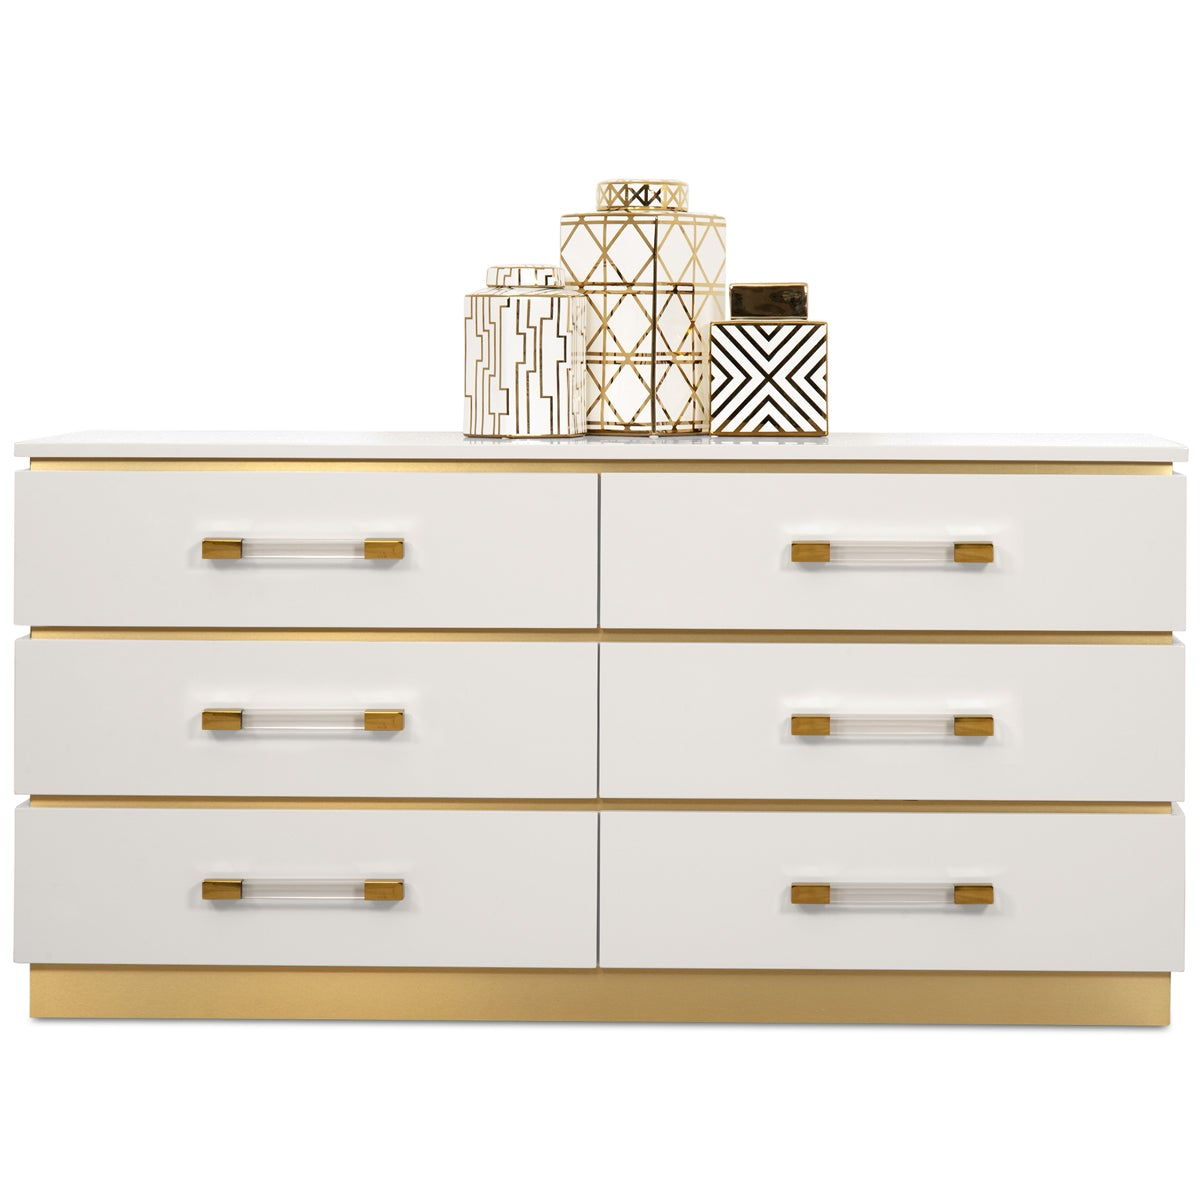 Six-drawer dresser with a brushed brass frame, pedestal base, white drawer fronts and Lucite drawer pulls.